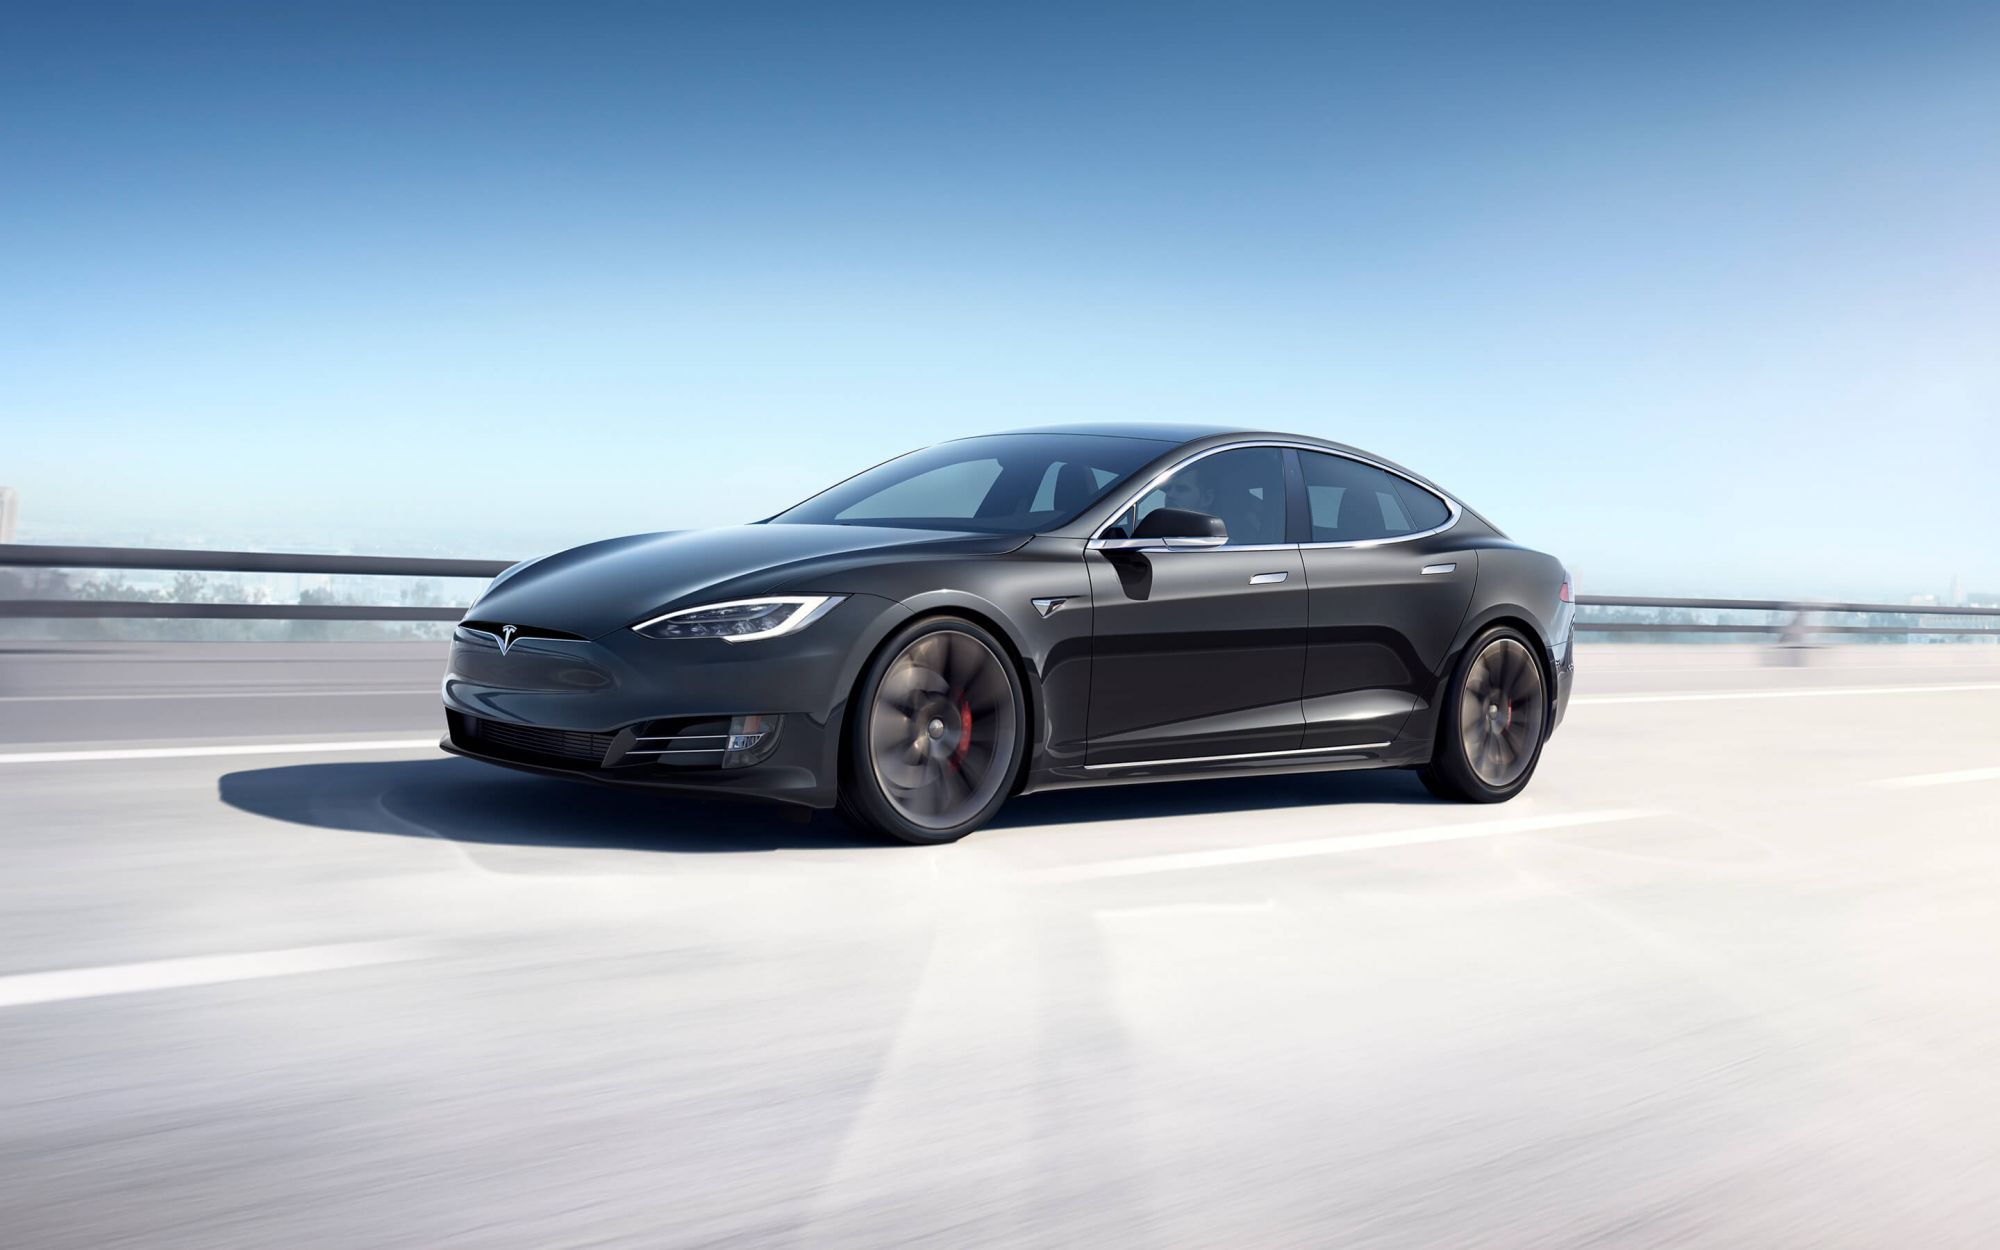 The Tesla Model S Is The First Electric Vehicle With A 400-Mile Range